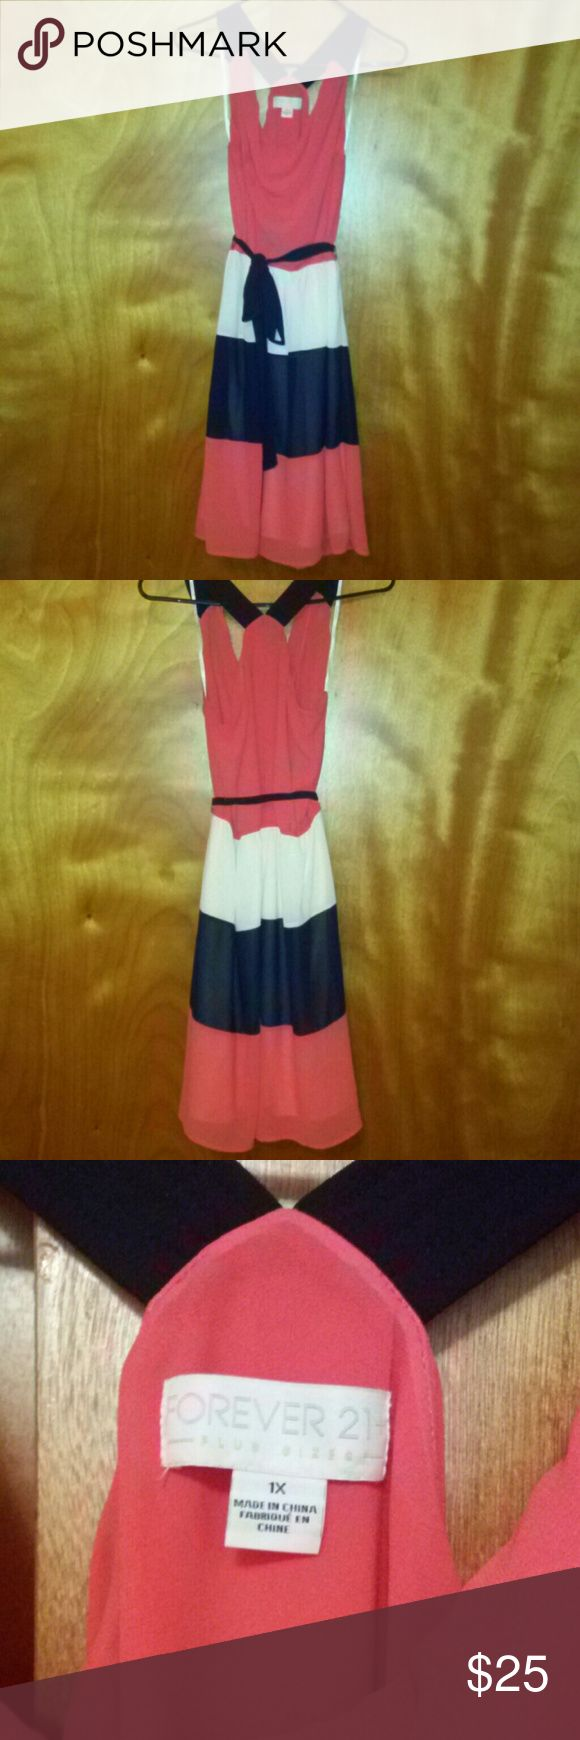 Beautiful coral, cream and navy striped dress. Cross back dress with navy straps. Forever 21 Dresses Midi